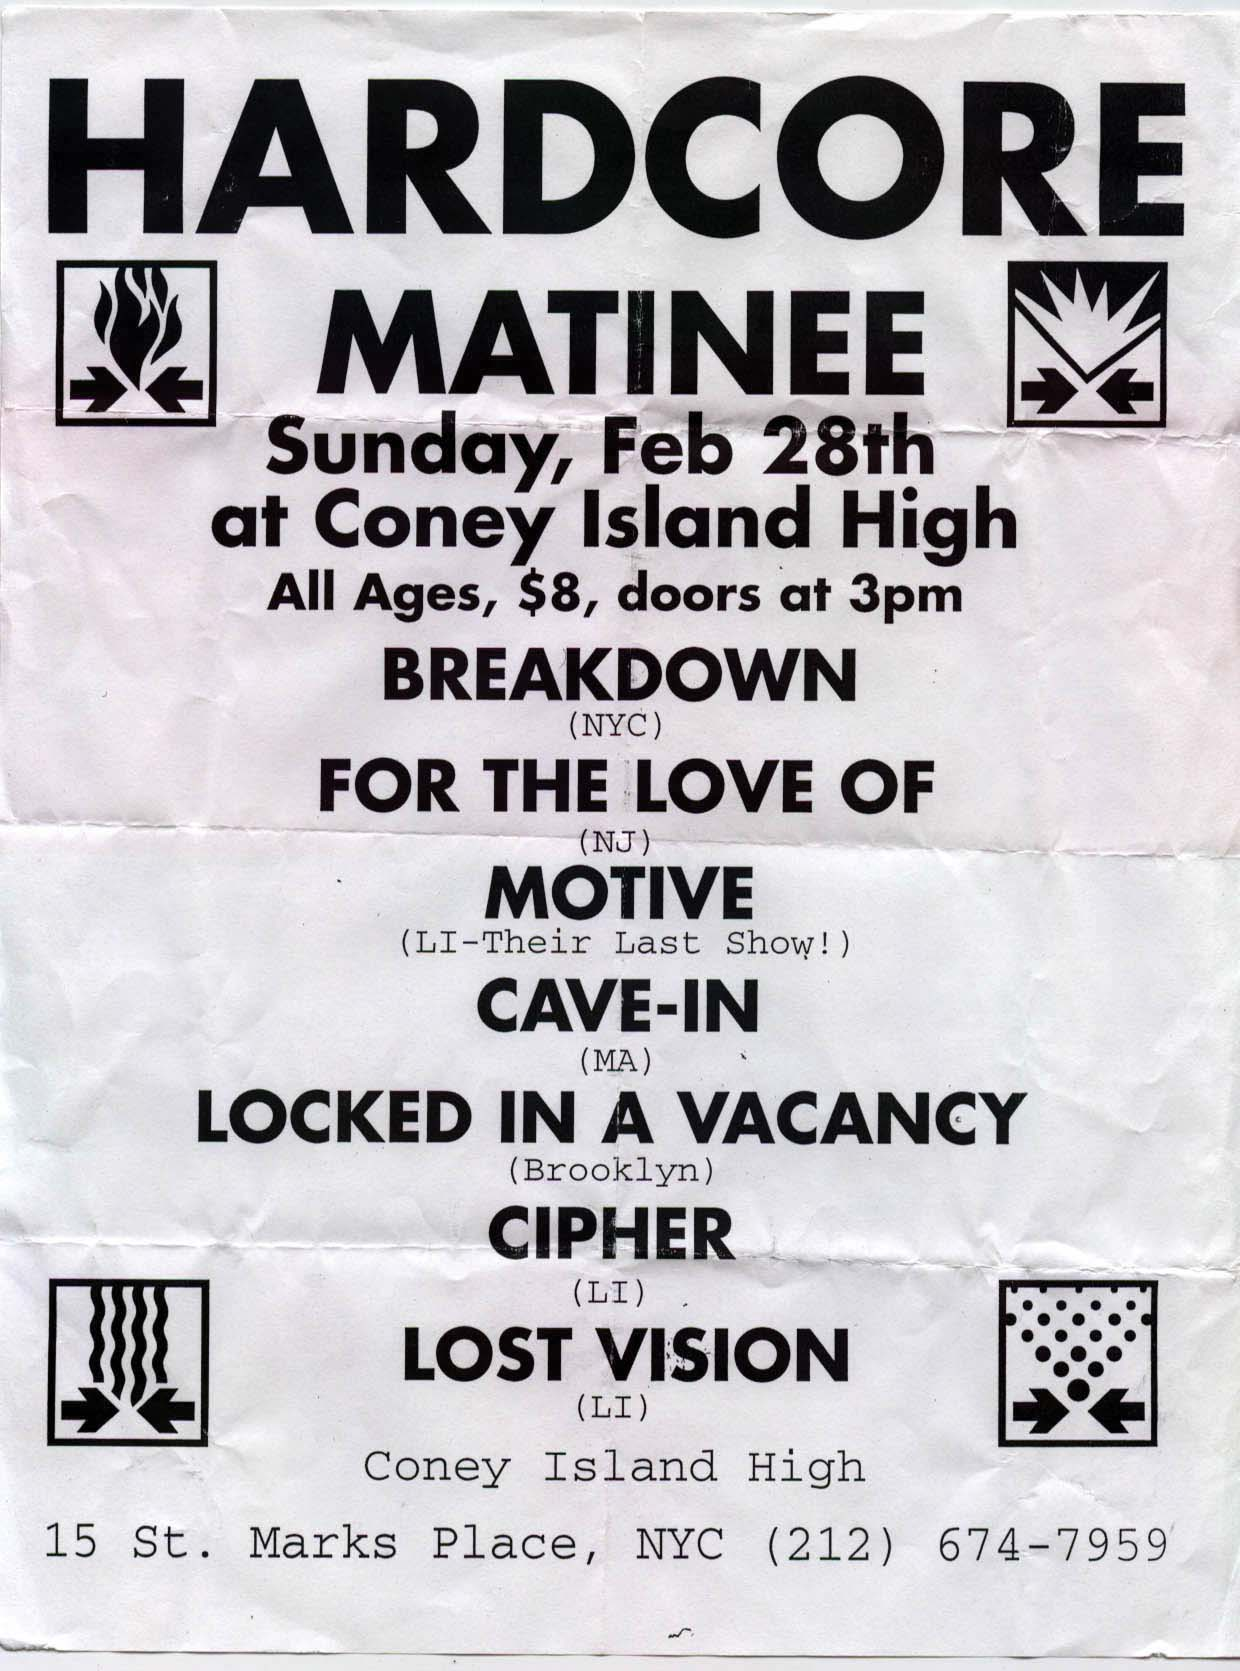 Breakdown-For The Love Of-Motive-Cave In-Locked In A Vacancy-Cipher-Lost Vision @ Coney Island High New York City NY 2-28-99